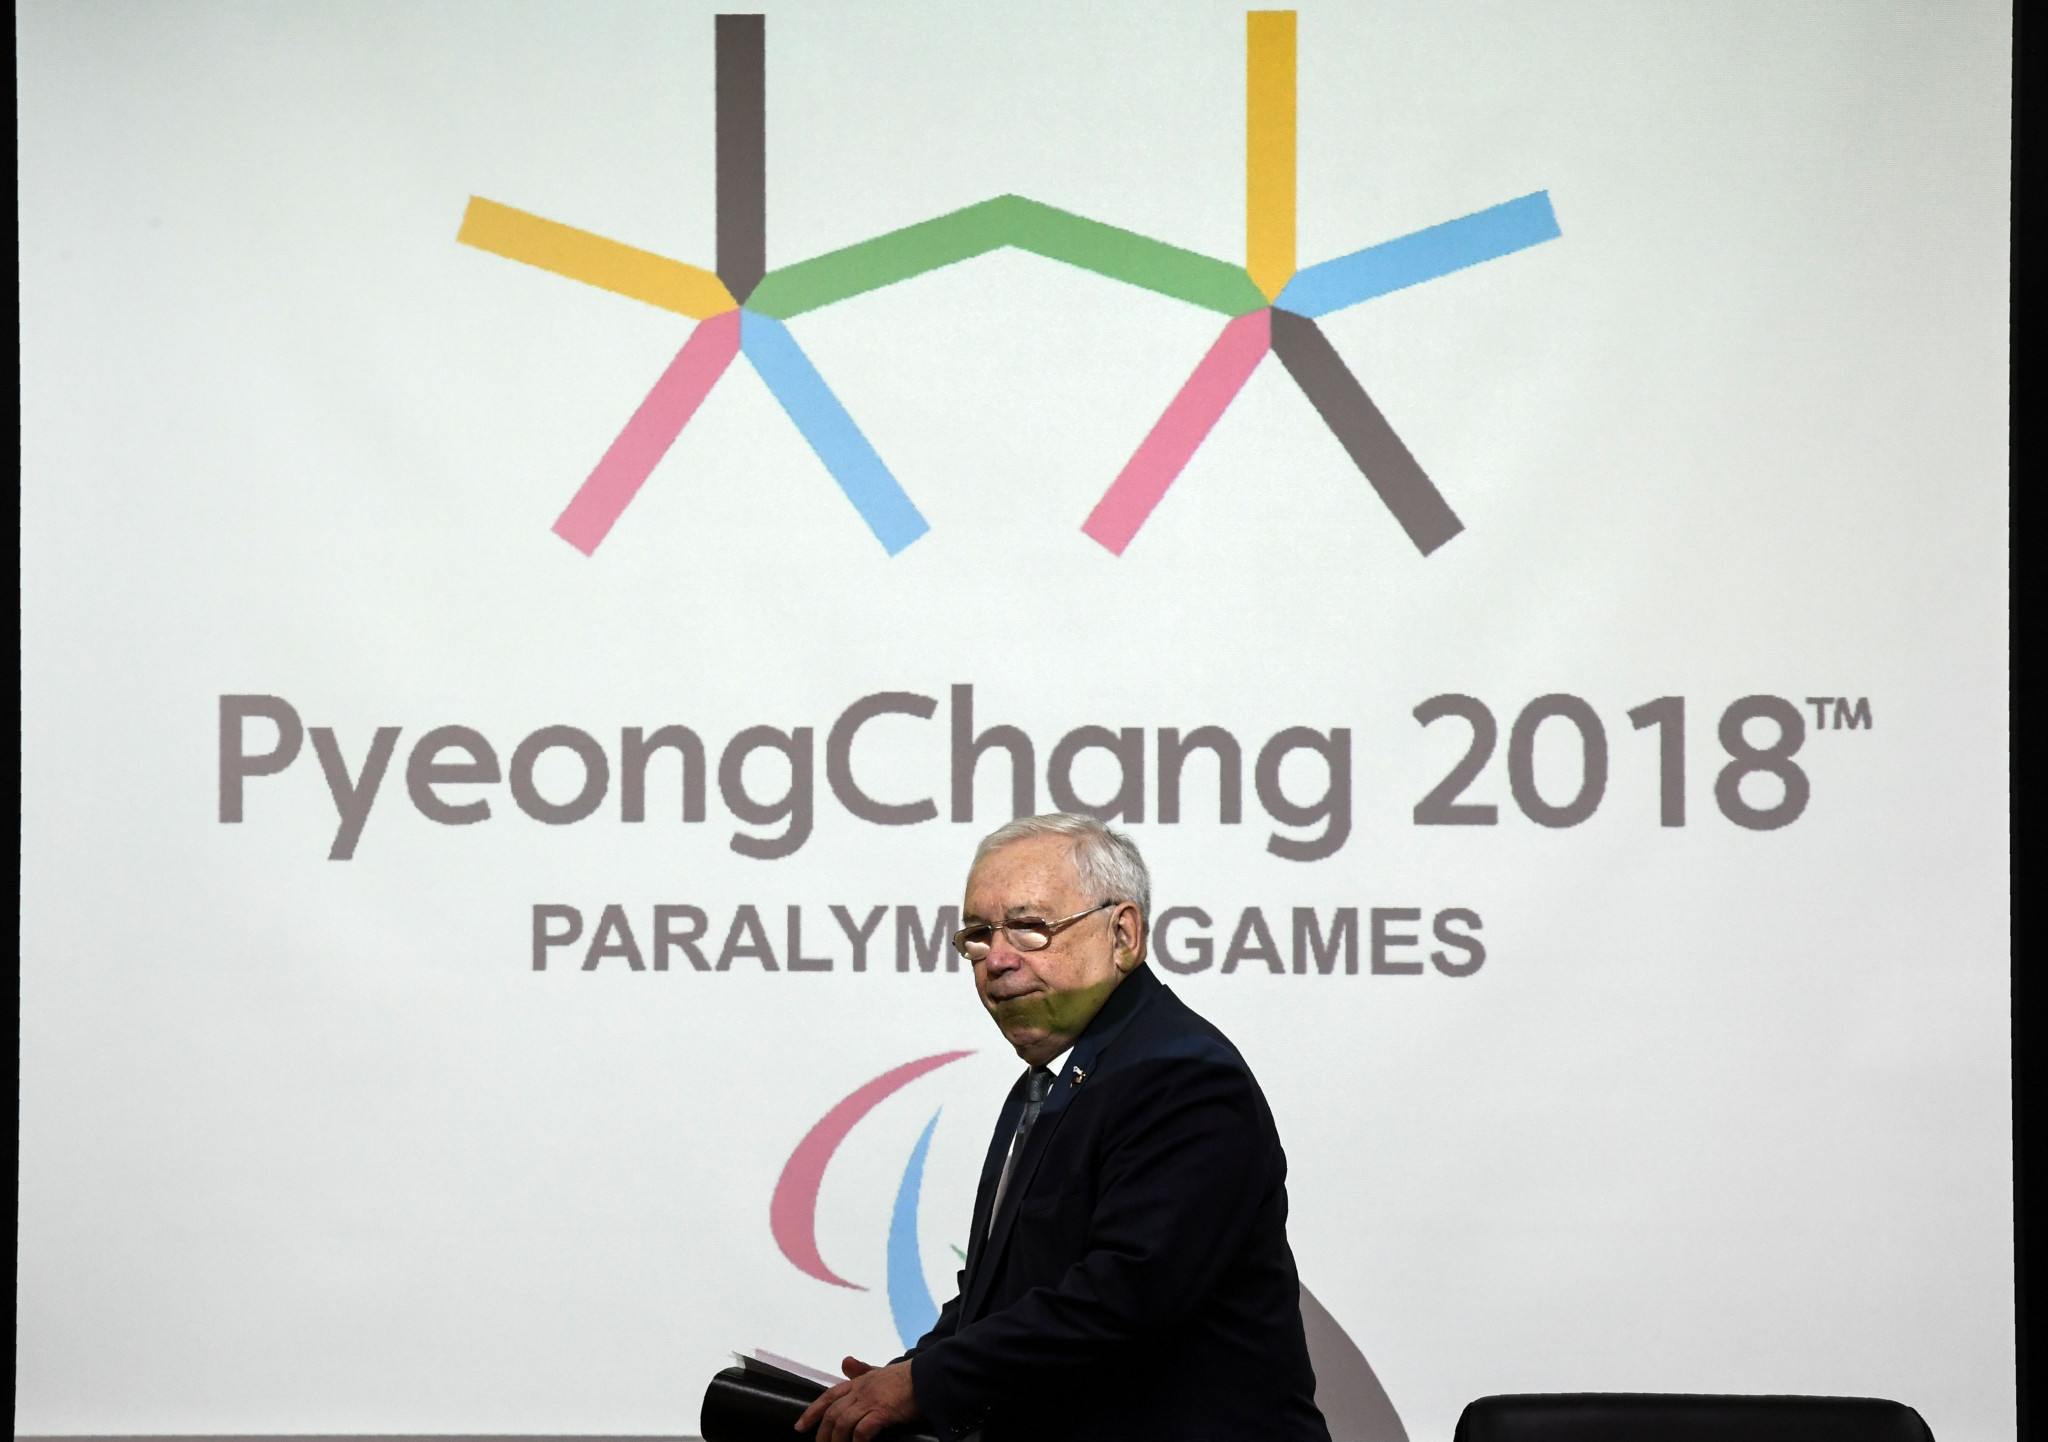 Russia submit list of proposed athletes on neutral team for Pyeongchang 2018 Winter Paralympics